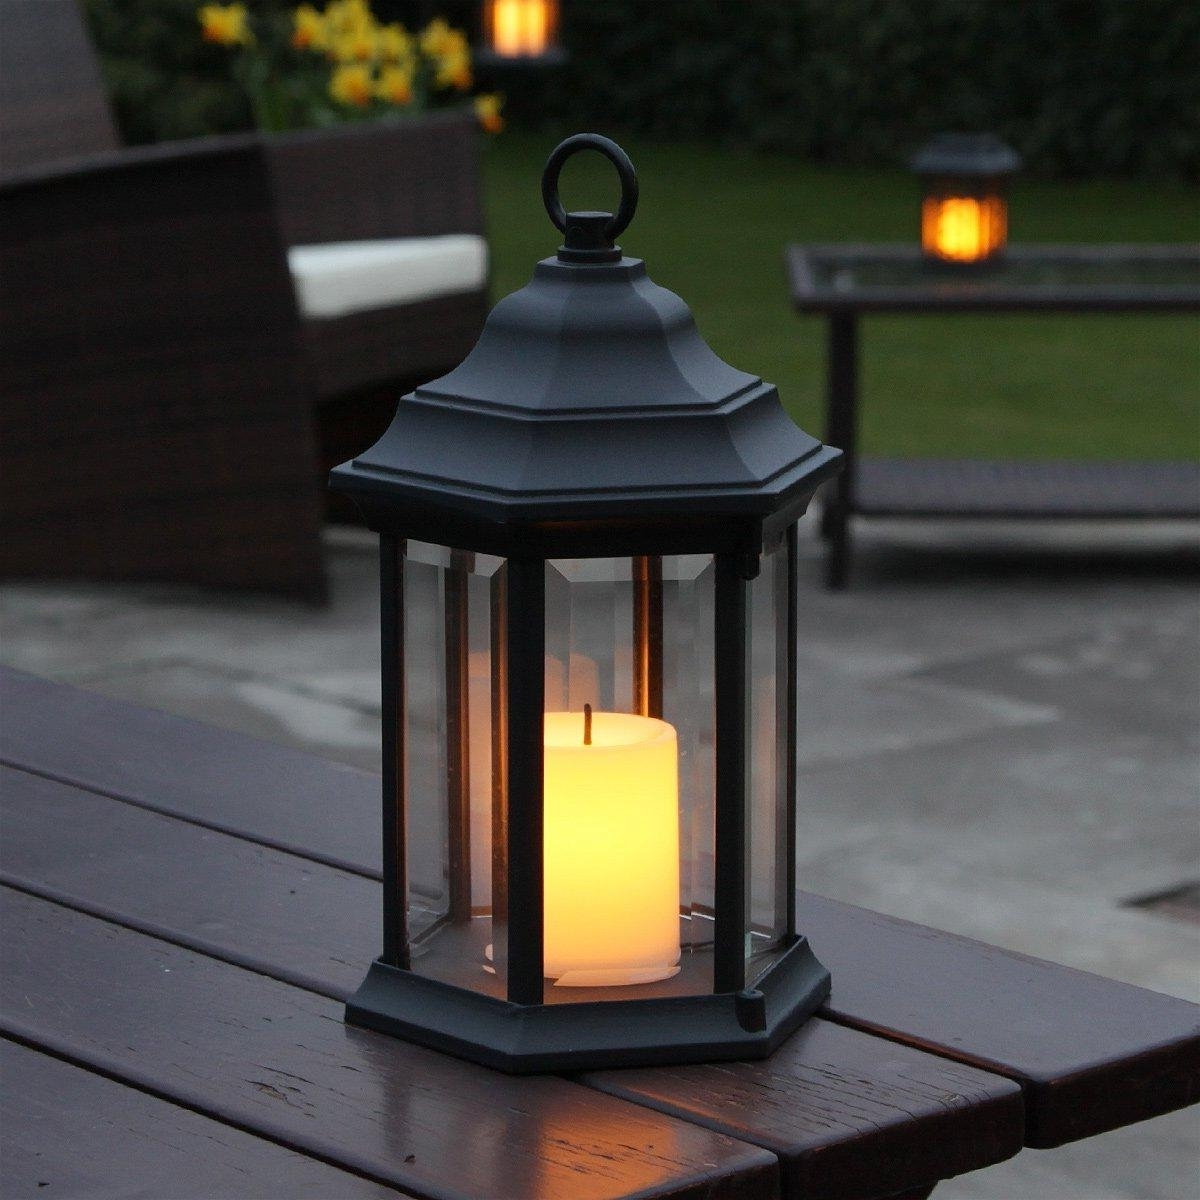 Famous Outdoor Lanterns With Battery Candles Within Outdoor Lighting For Sale – Outdoor Lights Prices, Brands & Review (Gallery 19 of 20)